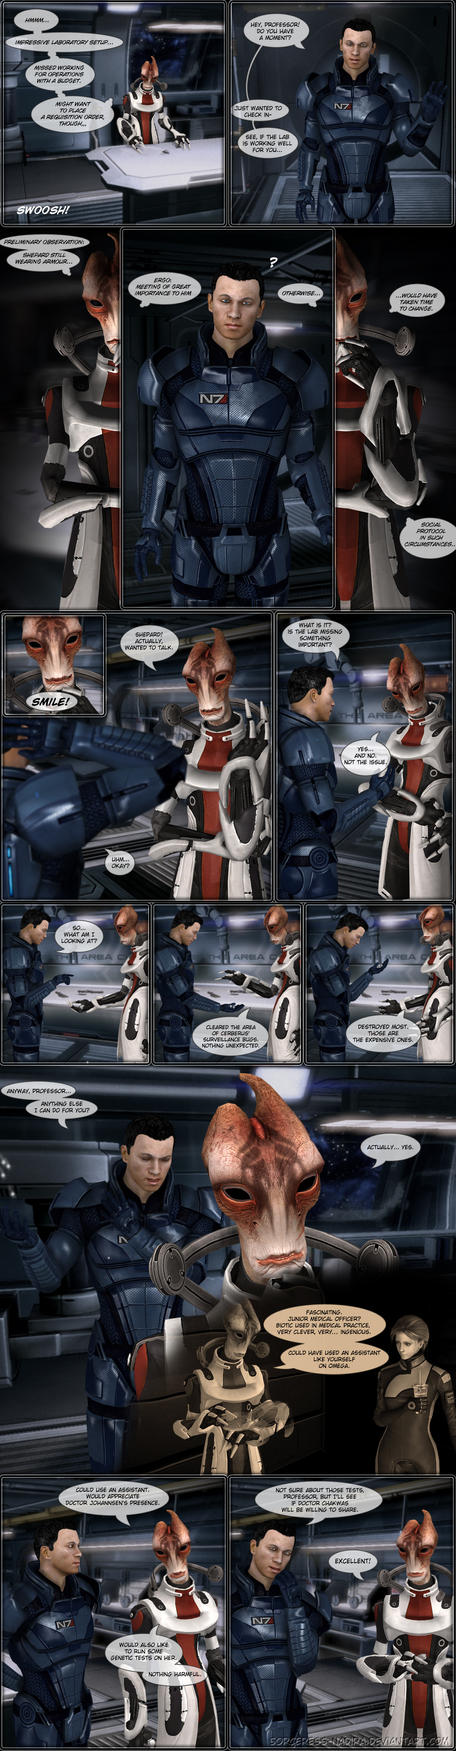 Biomedic's Log - comic entry 3 by Sorceress-Nadira